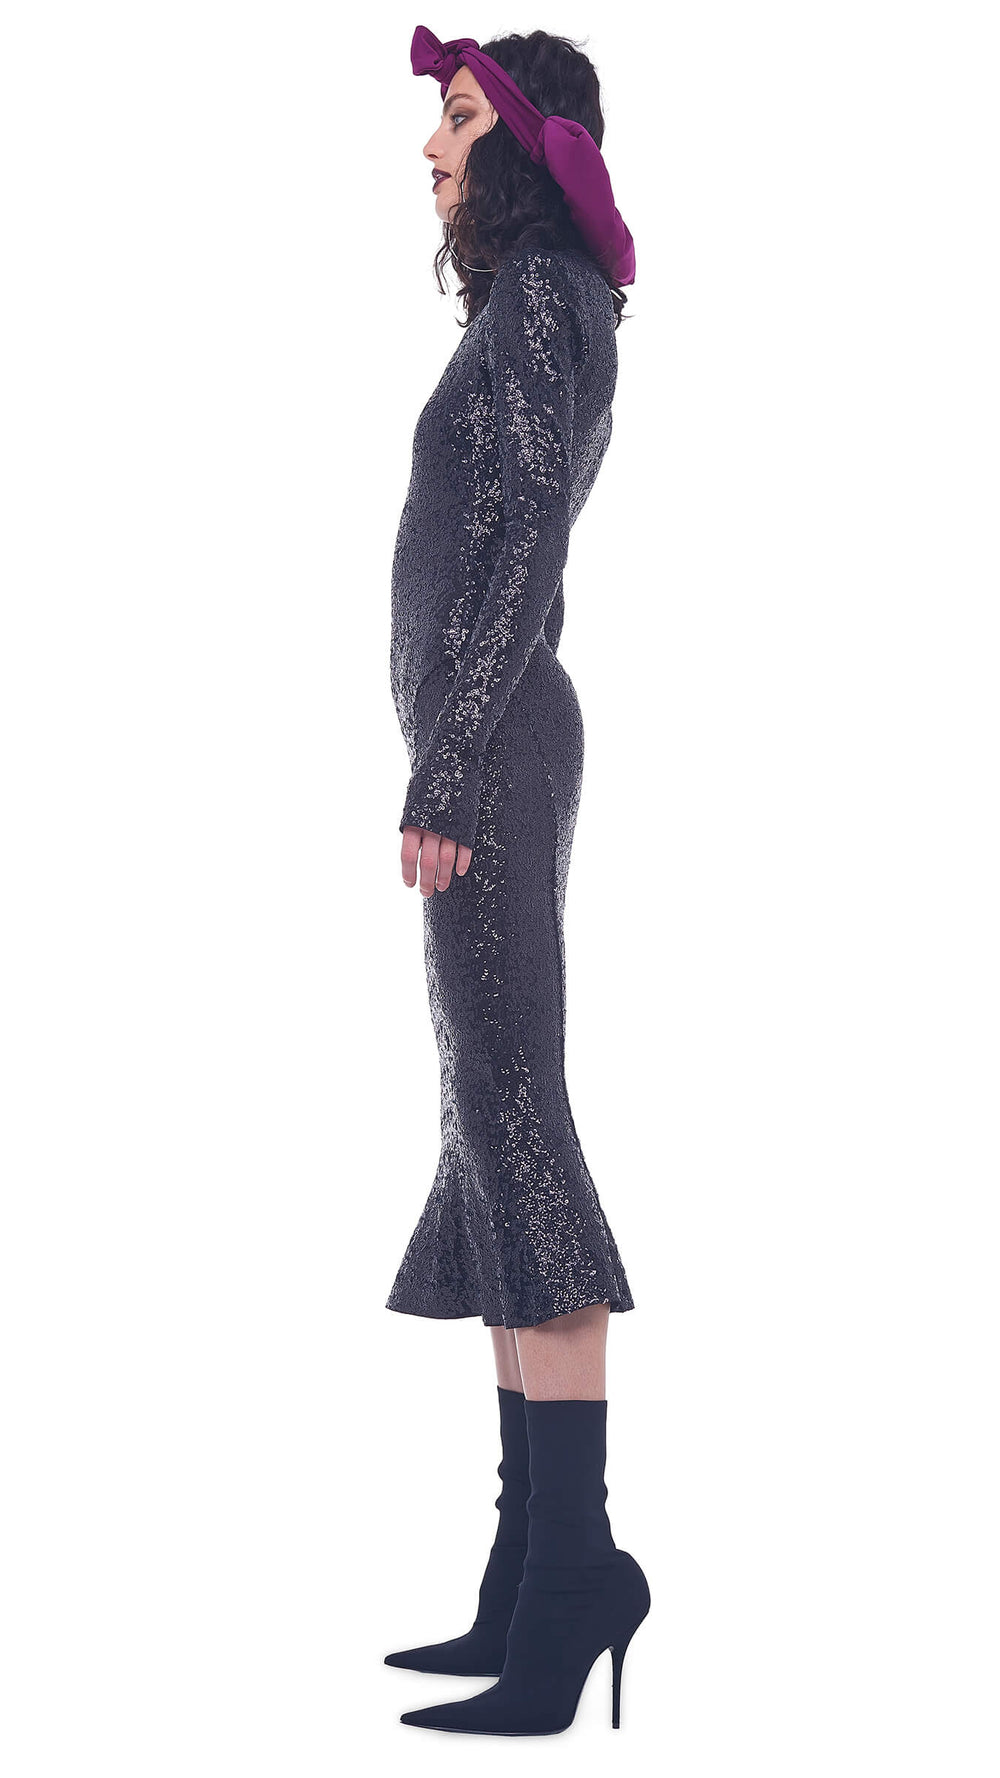 OVERLAPPING SEQUIN LS TURTLE FISHTAIL DRESS TO MIDCALF